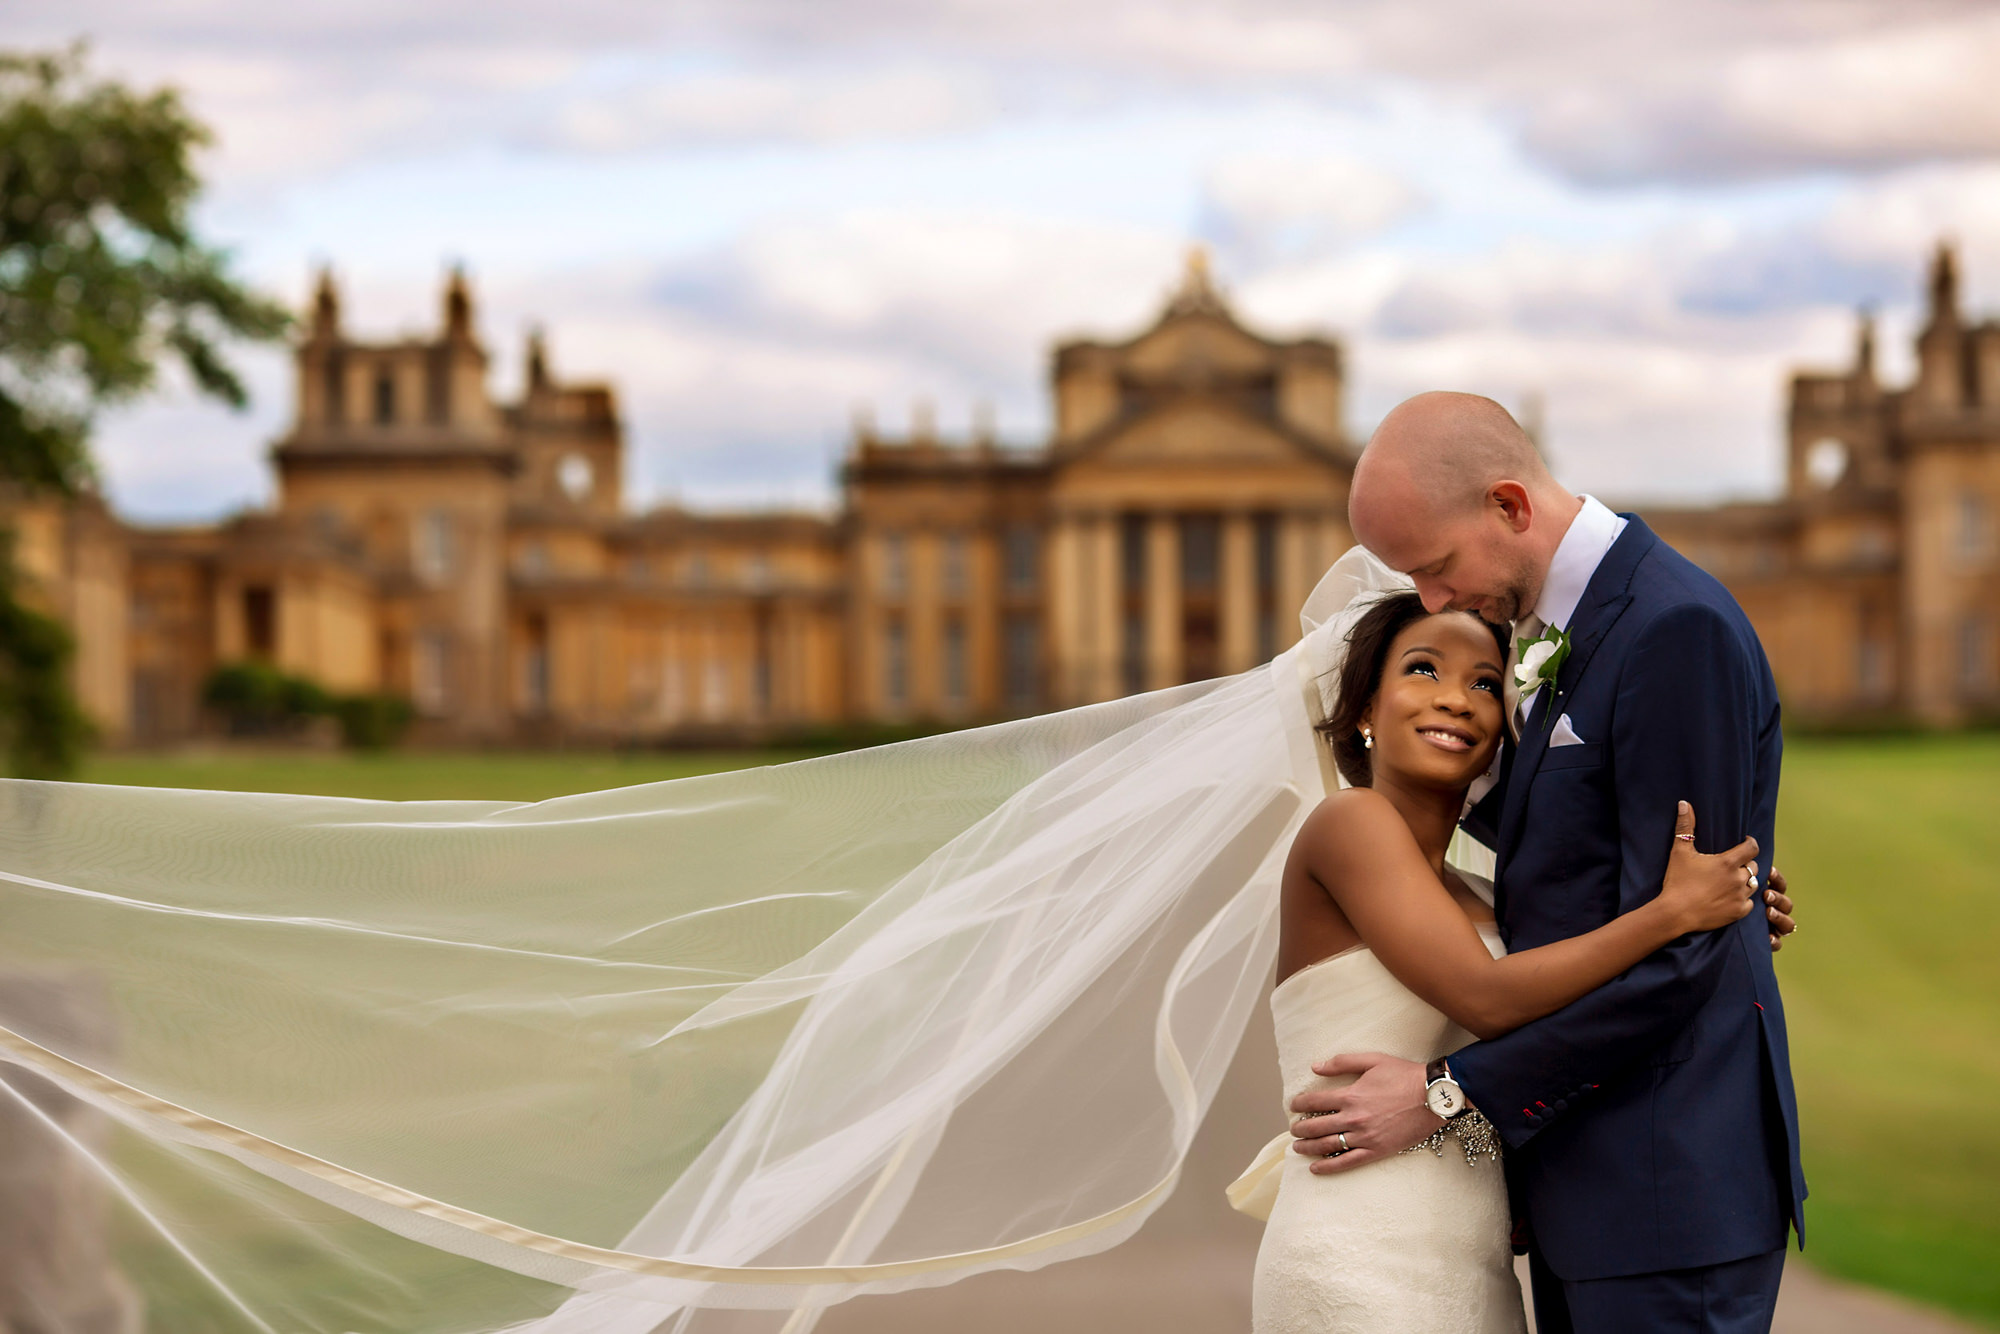 Bride and groom at historic site - photo by Alakija Studios